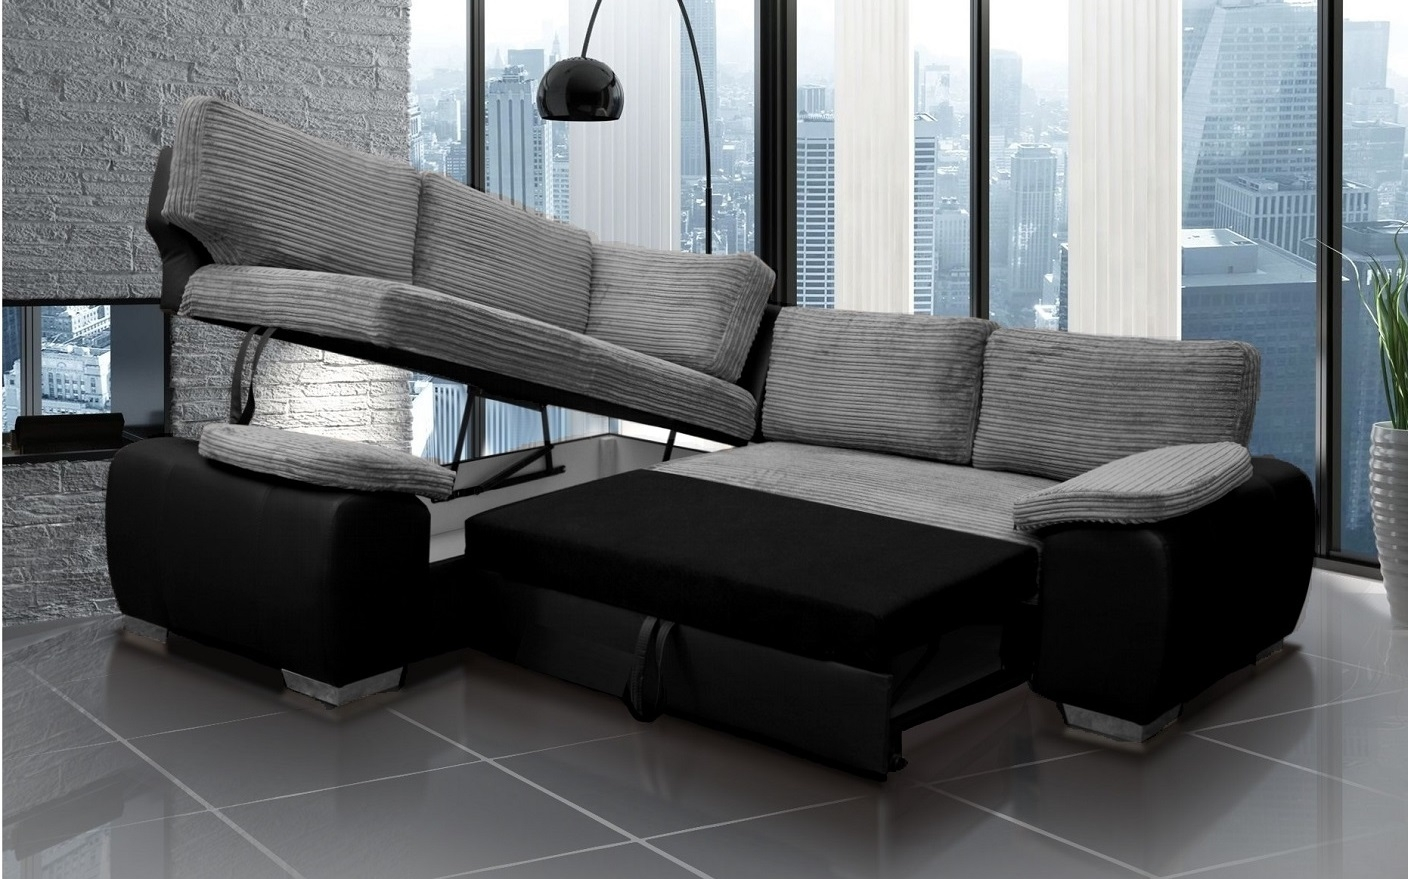 buy online ba0f2 79d60 Details about ENZO CORNER SOFA BED WITH STORAGE BLACK AND GREY JUMBO FABRIC  & FAUX LEATHER